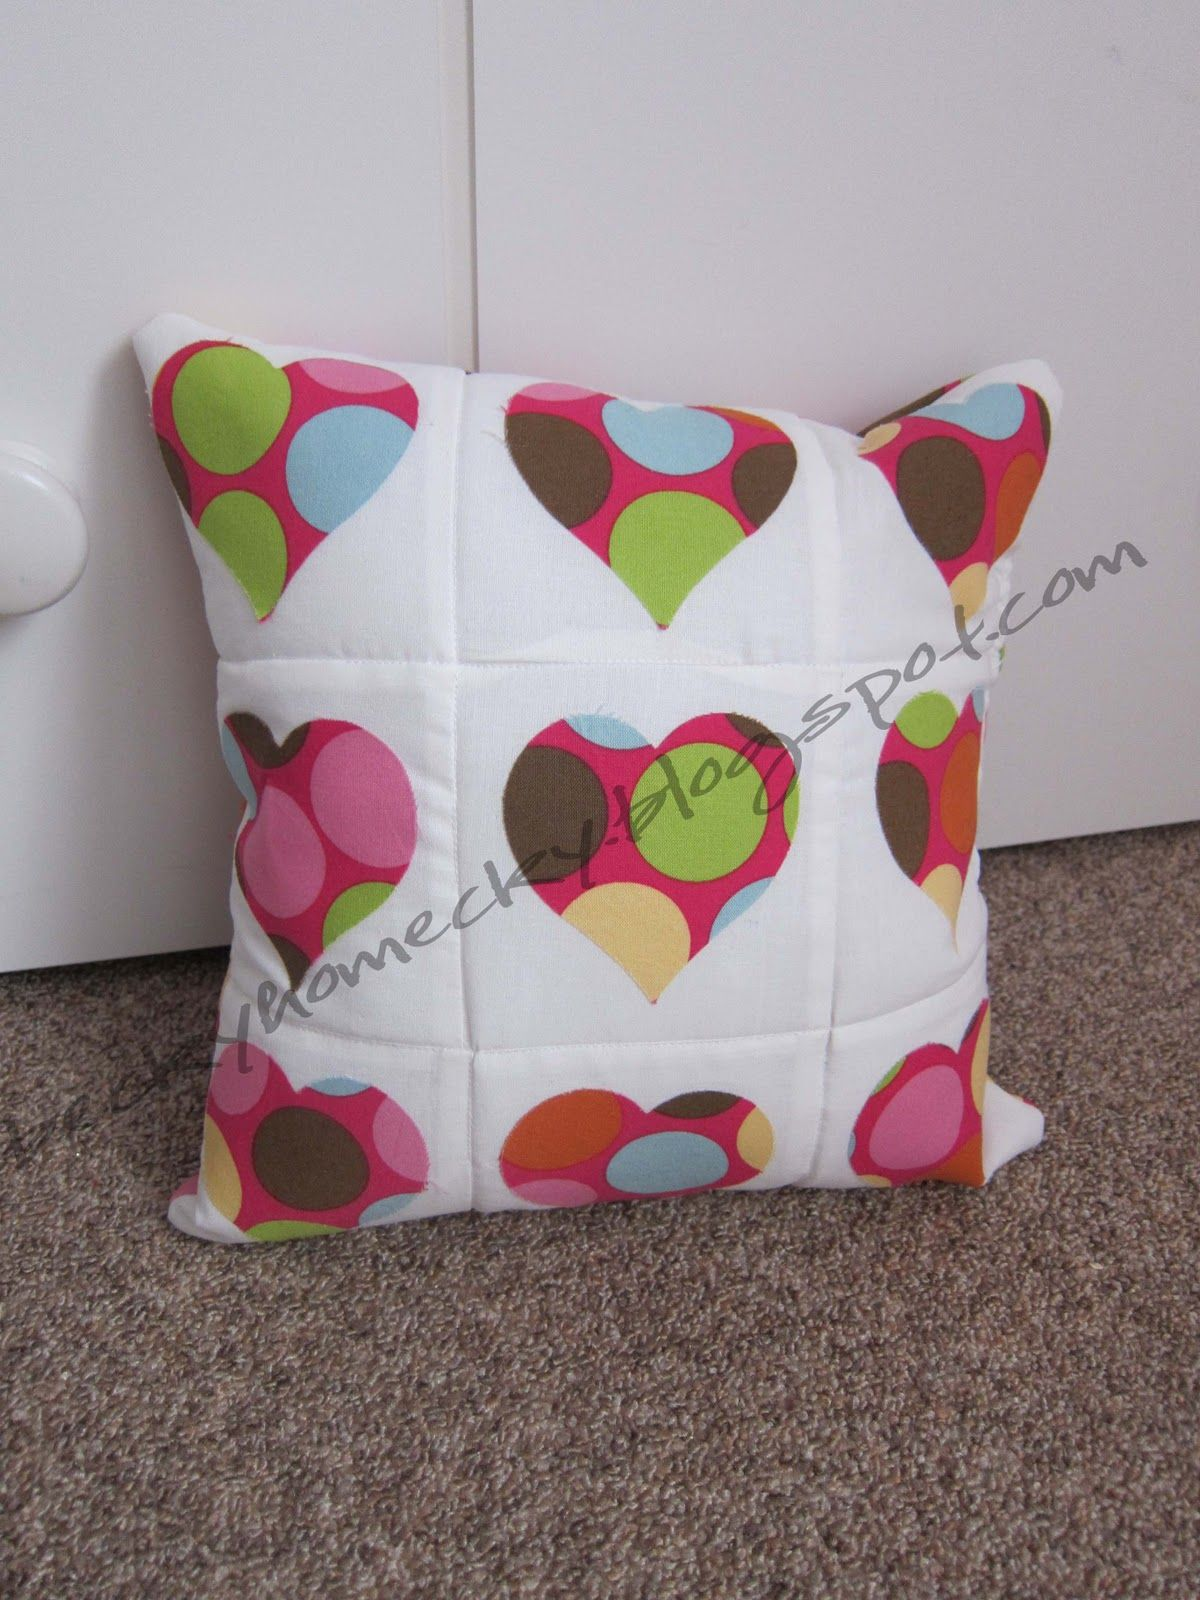 Quick Quilted Pillow! Liking the polka dot hearts! #Sewing